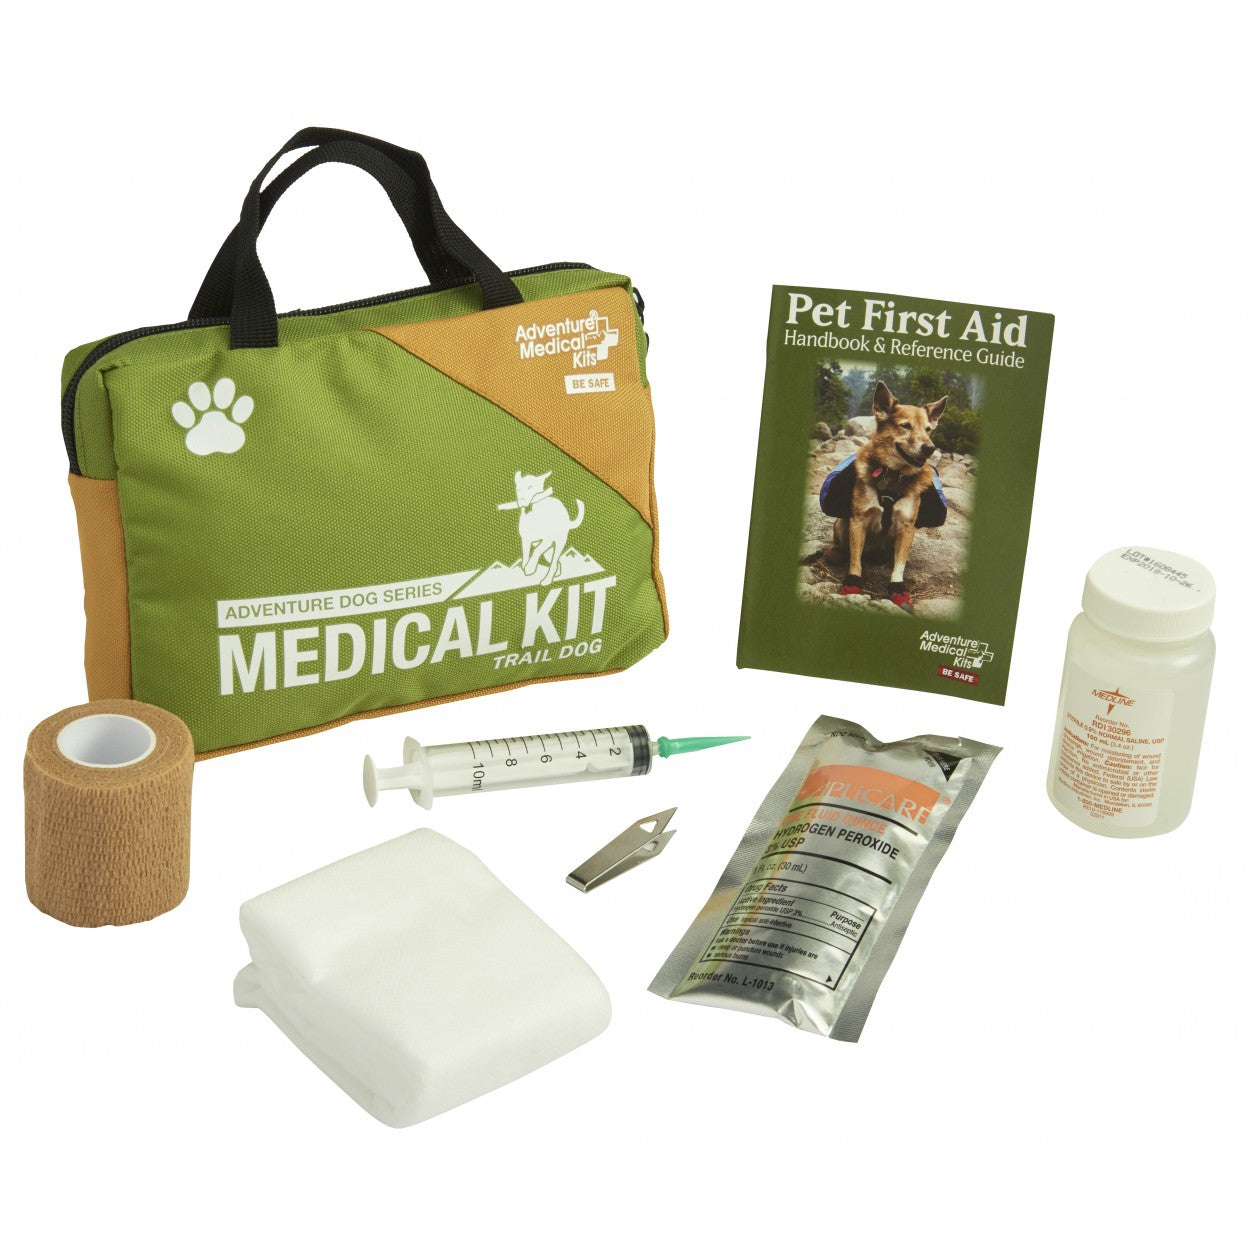 Adventure Dog Series Trail Medical Kit (Pre-order Ships in Feb 2021)